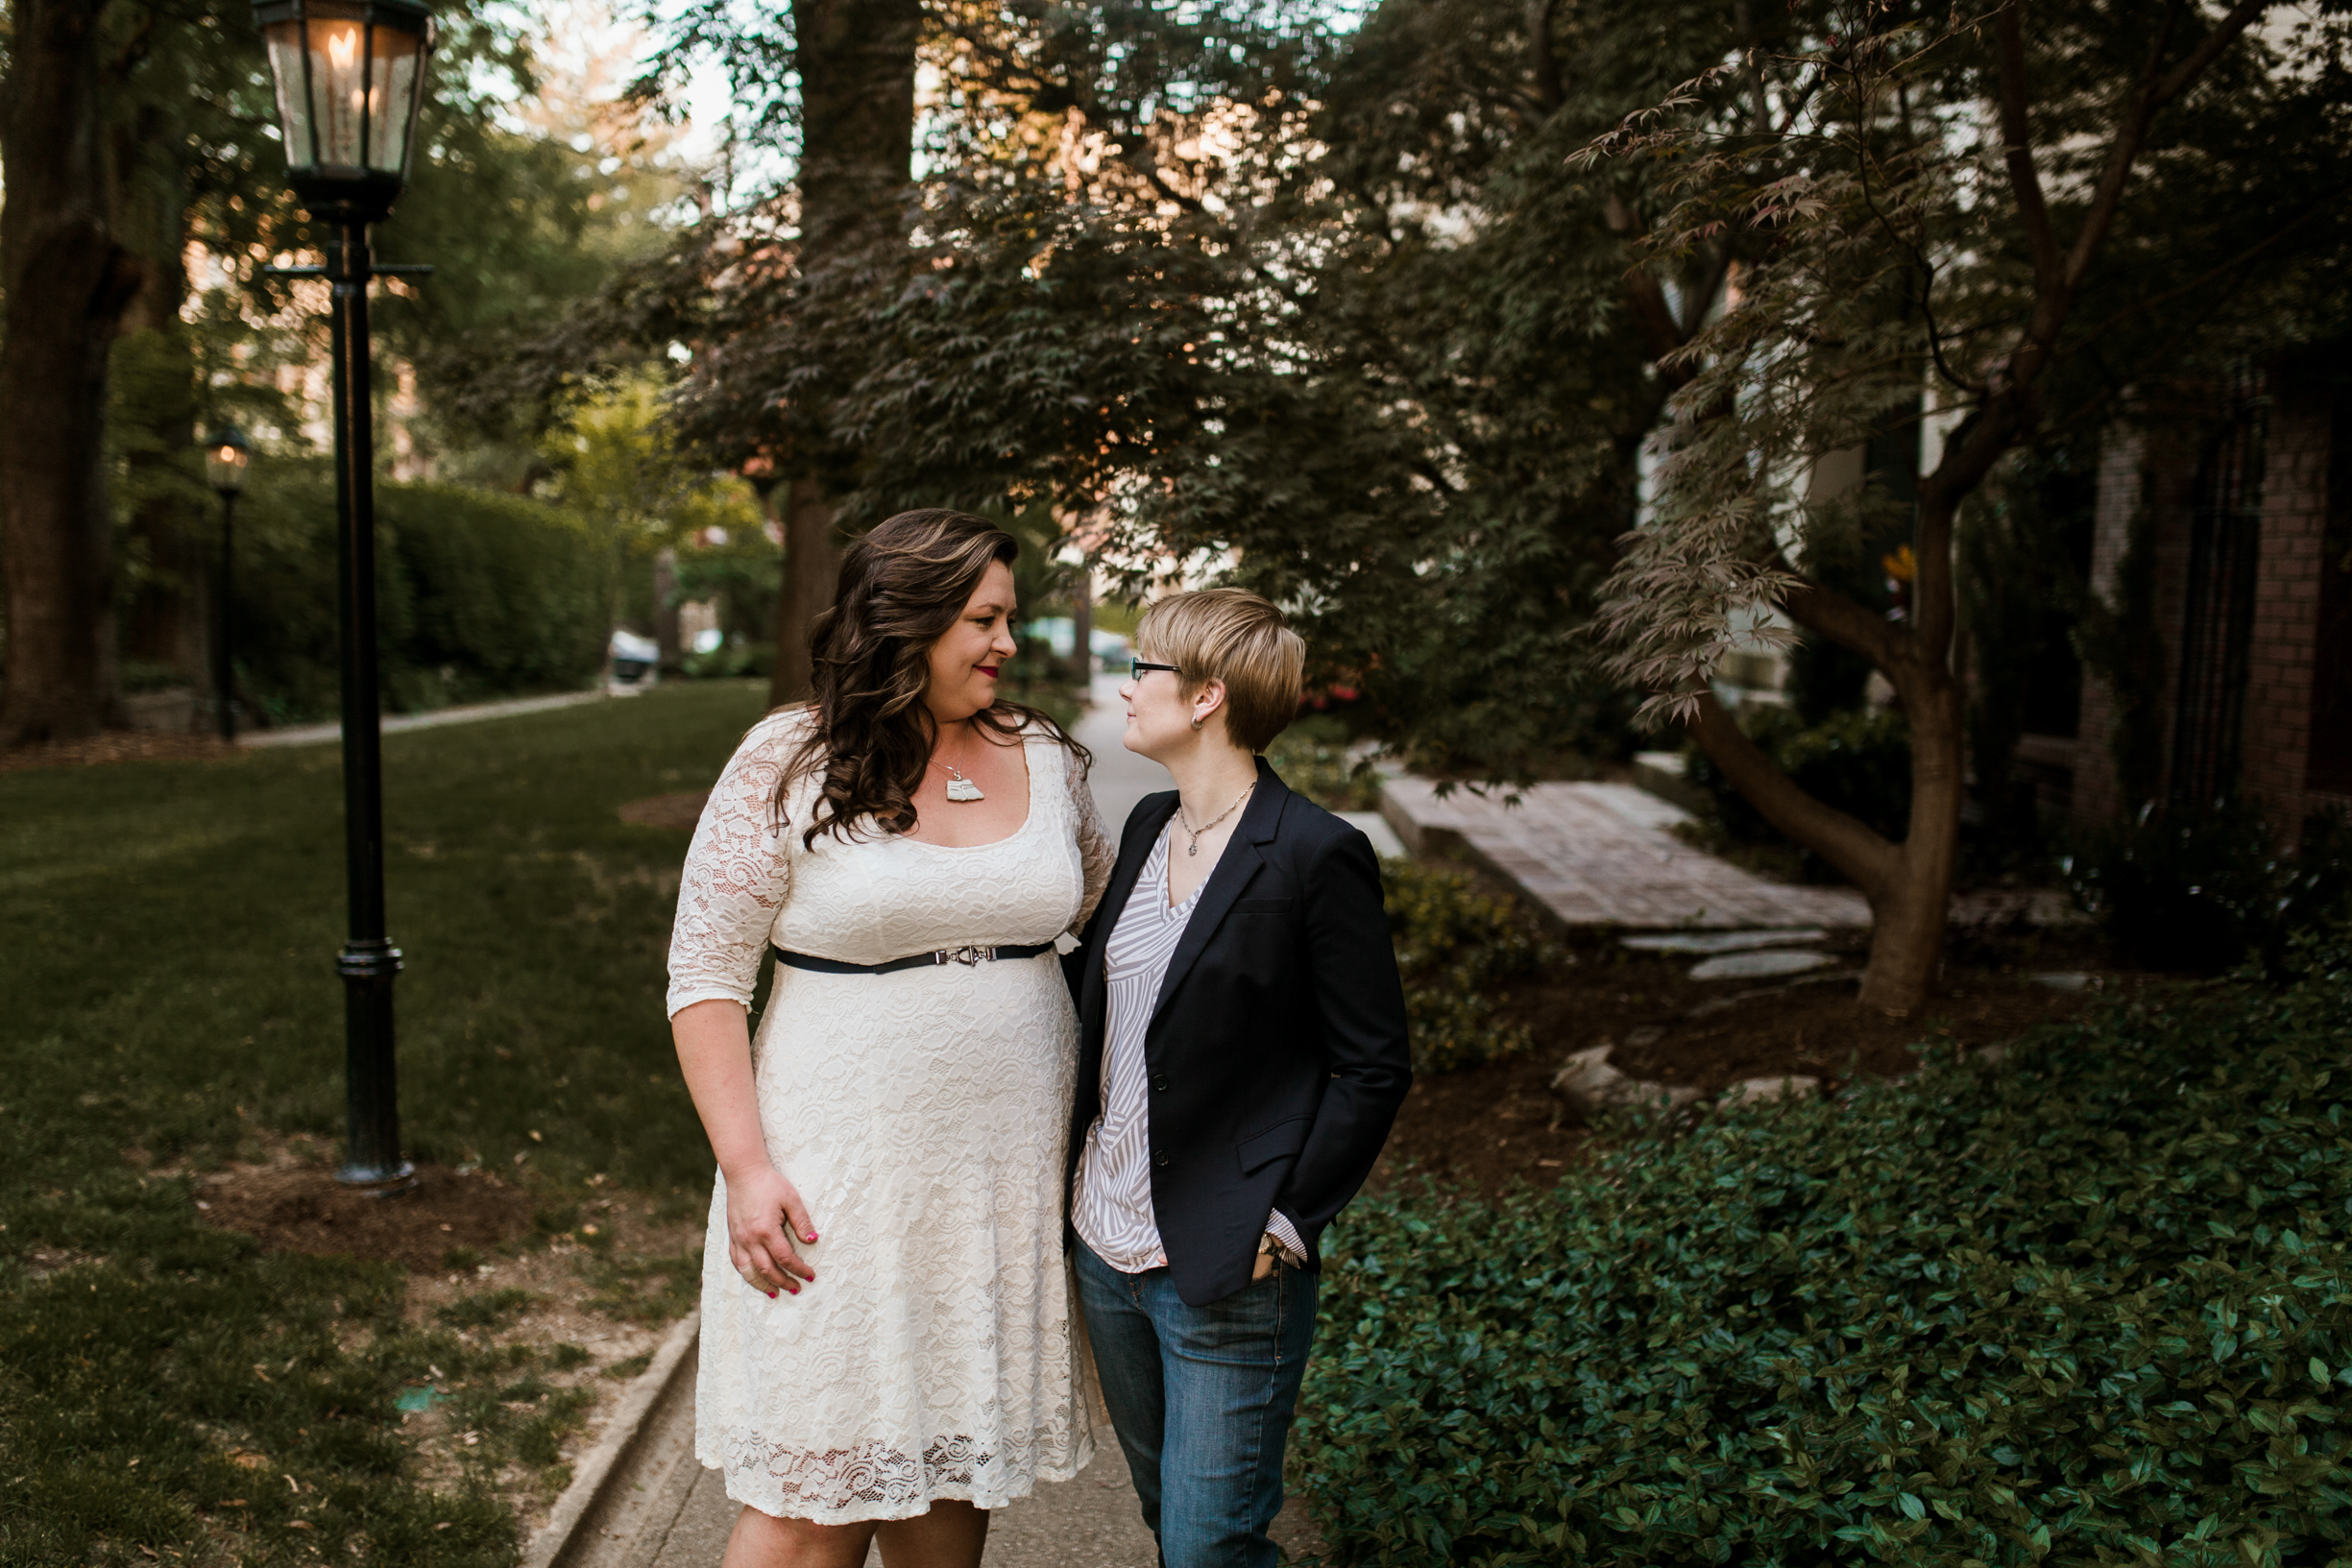 Crystal Ludwick Photo Louisville, Kentucky Wedding Photographer (20 of 24).jpg